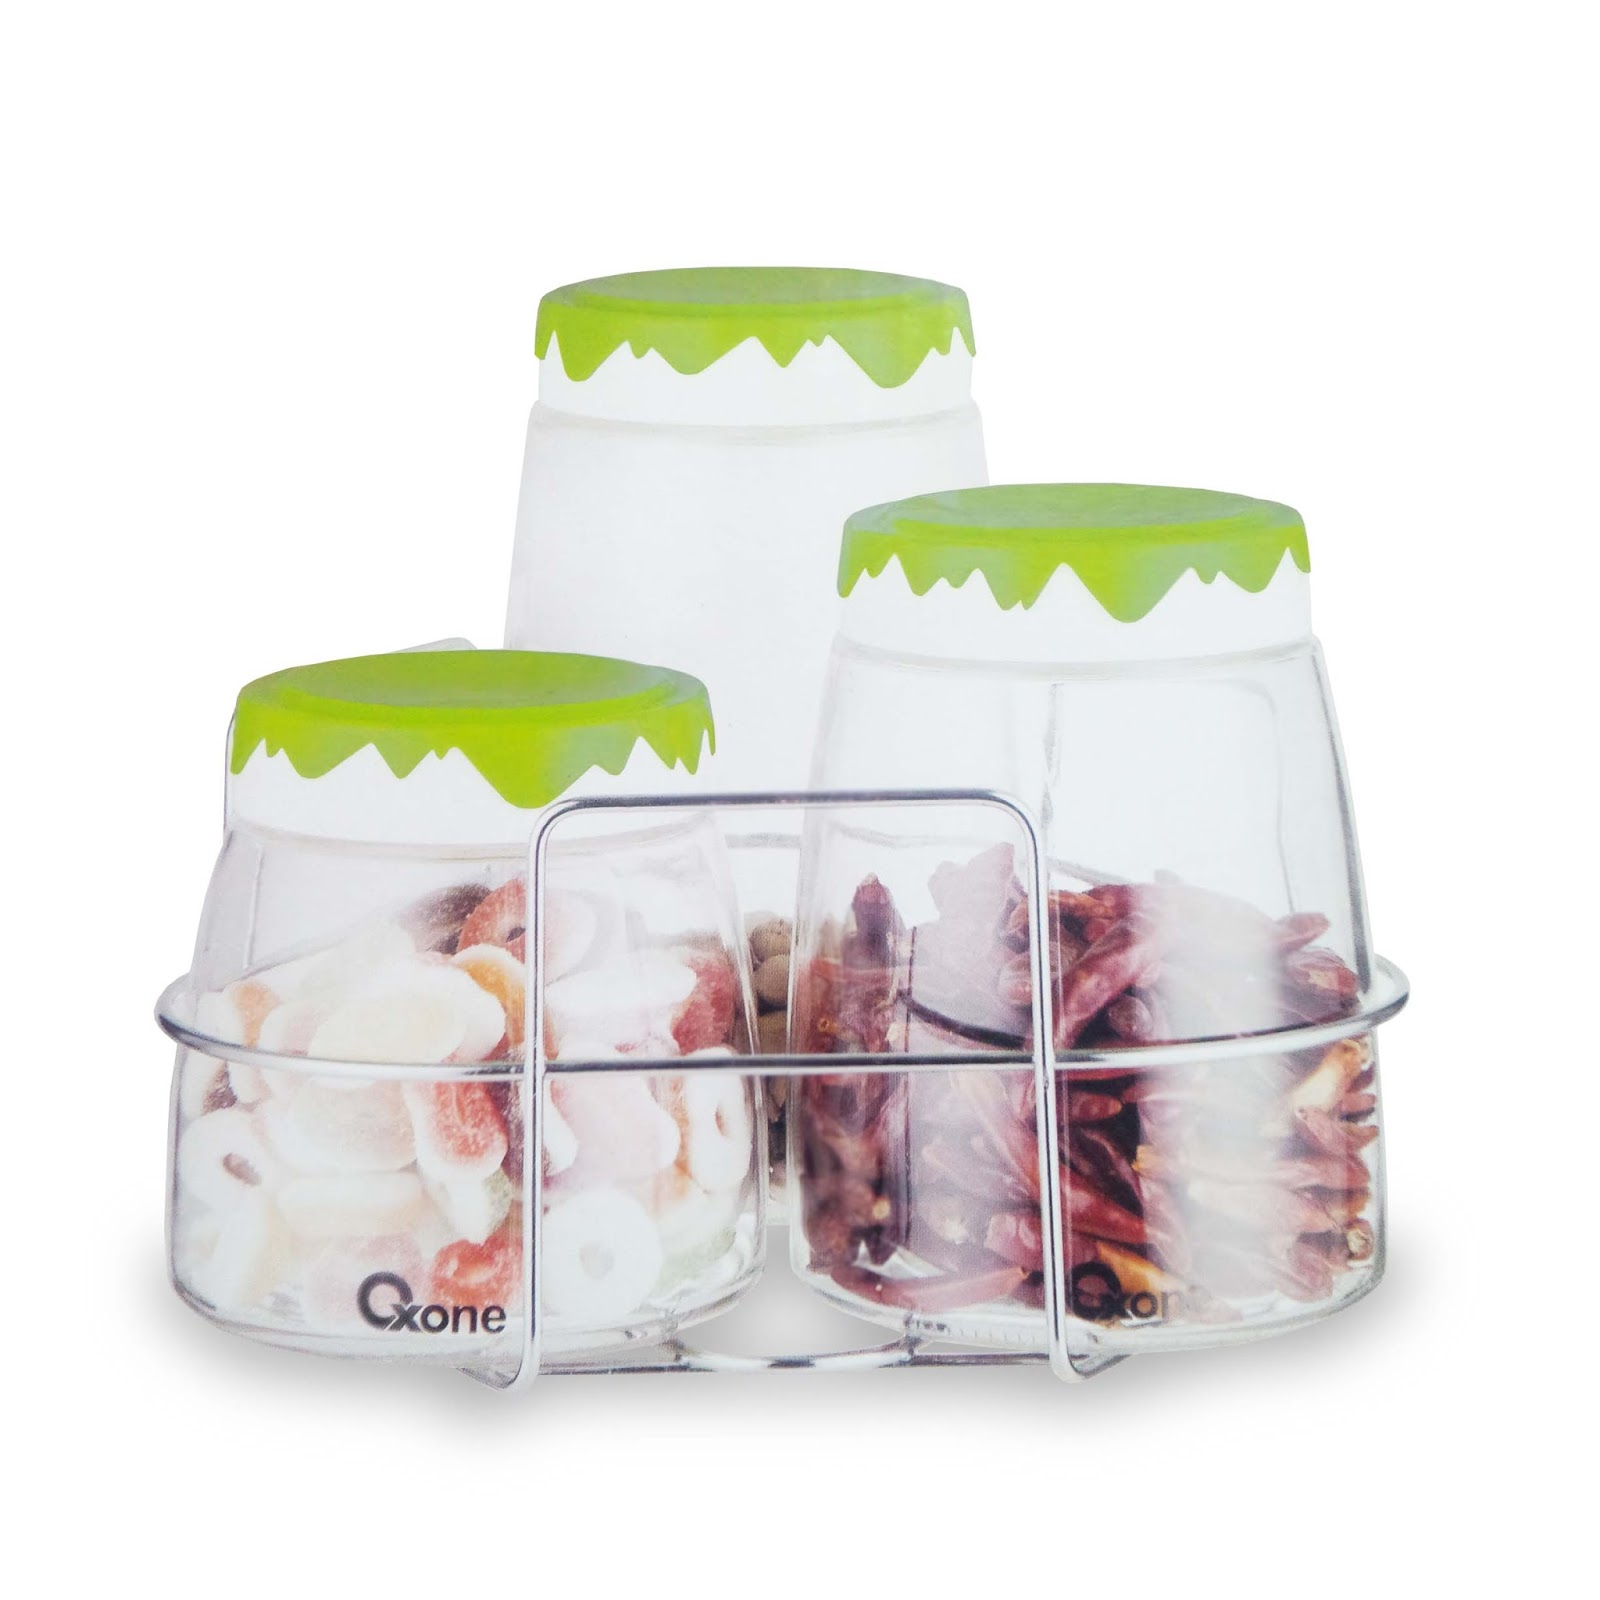 OX-404R | Oxone Snowy Jars with Rack